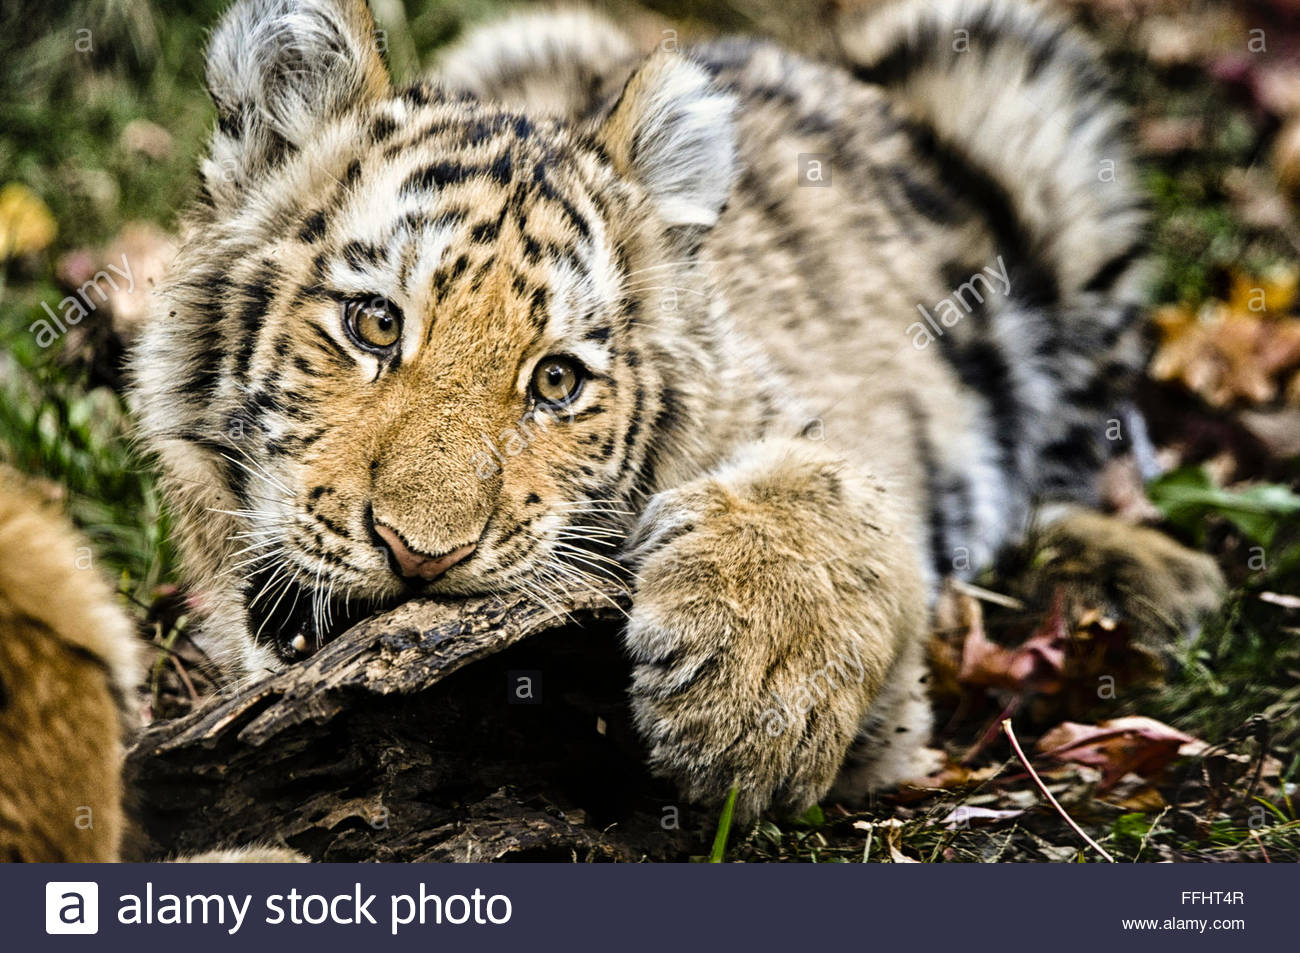 Five month old Amur or Siberian Tiger Cub, Panthera tigris altaica, mouth open, biting, Bronx Zoo, New York City, - Stock Image